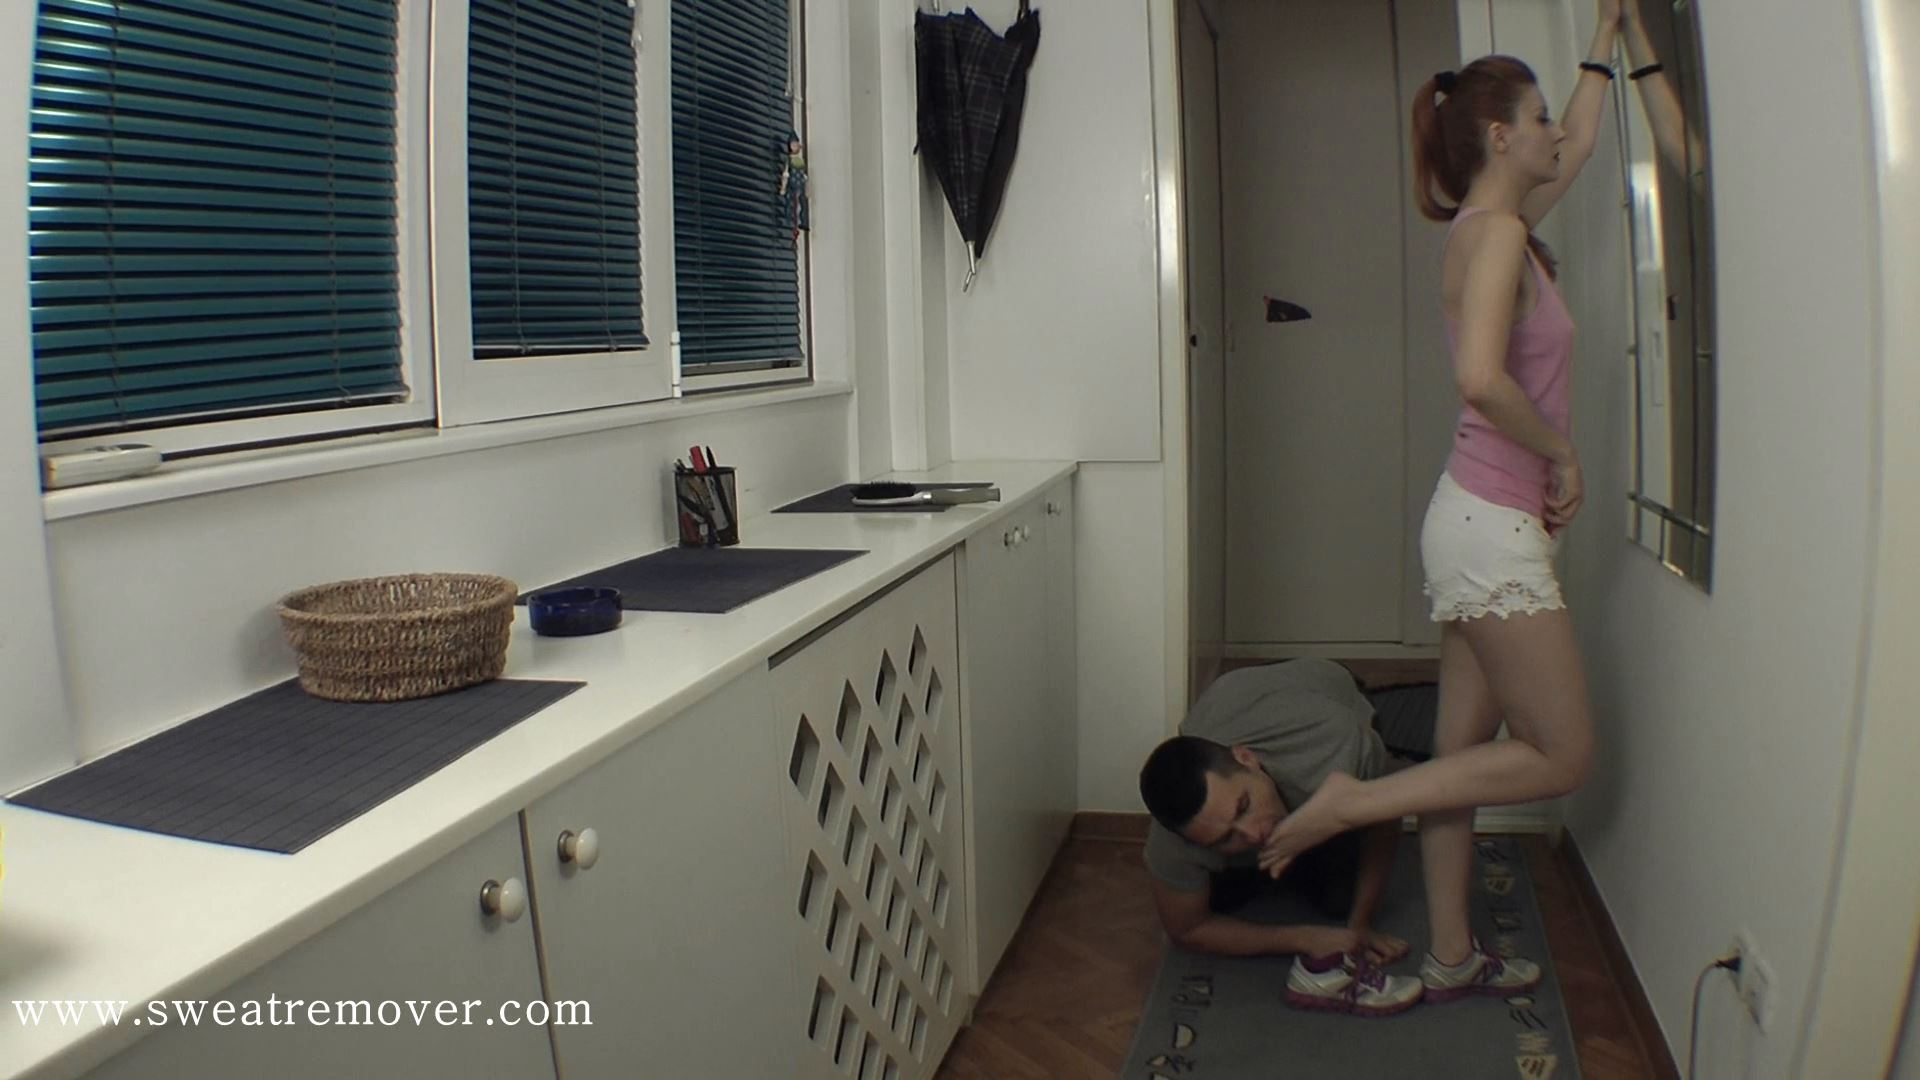 Goddess Victoria In Scene: I have a strange feeling that my feet are stinky - lay down and check it, slut - SWEATREMOVER - FULL HD/1080p/MP4